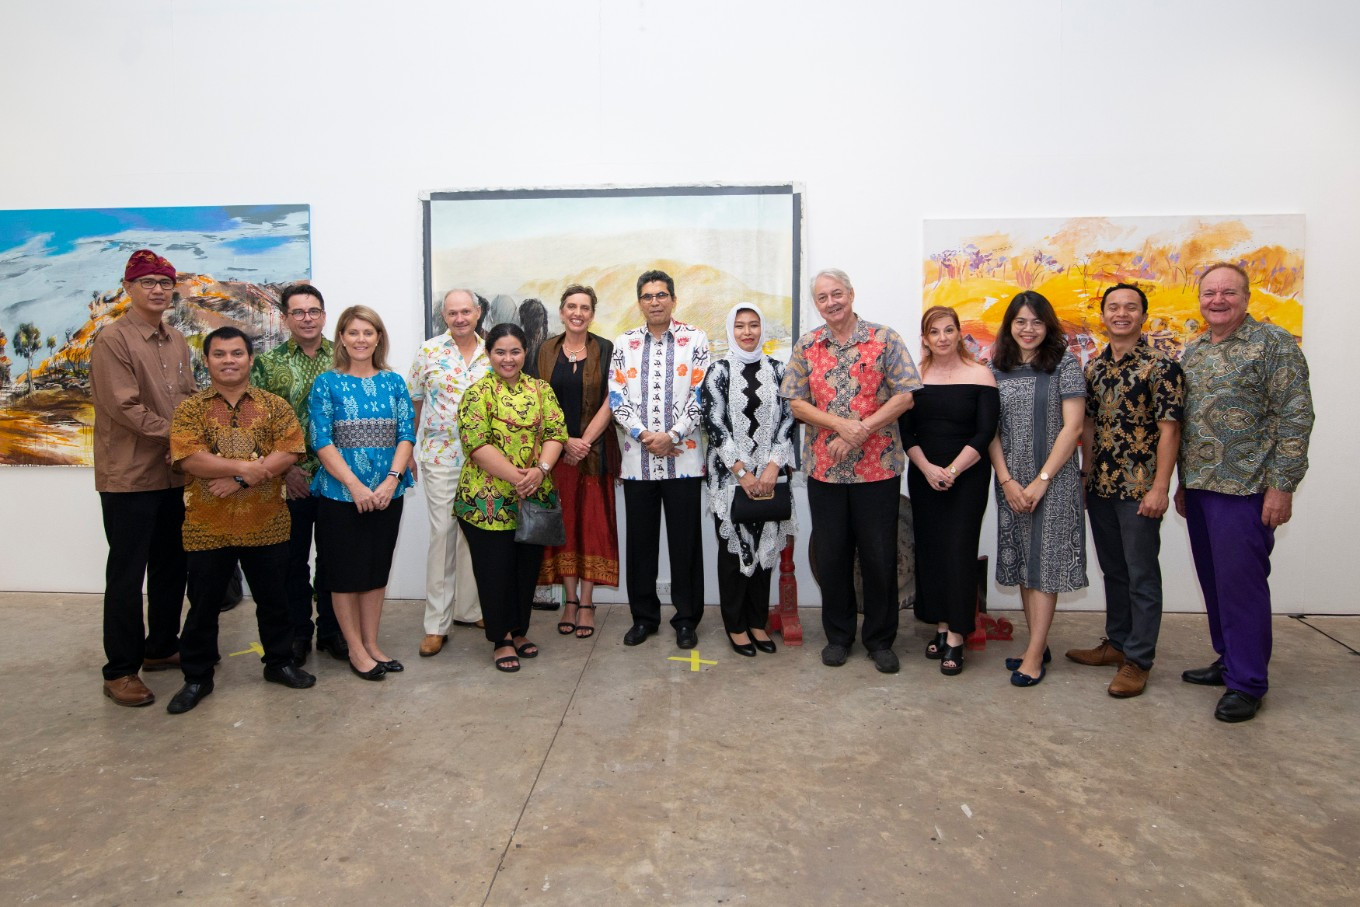 VIPs are pictured during the preview of the Artists' Camp Retrospective at the NCCA Darwin.